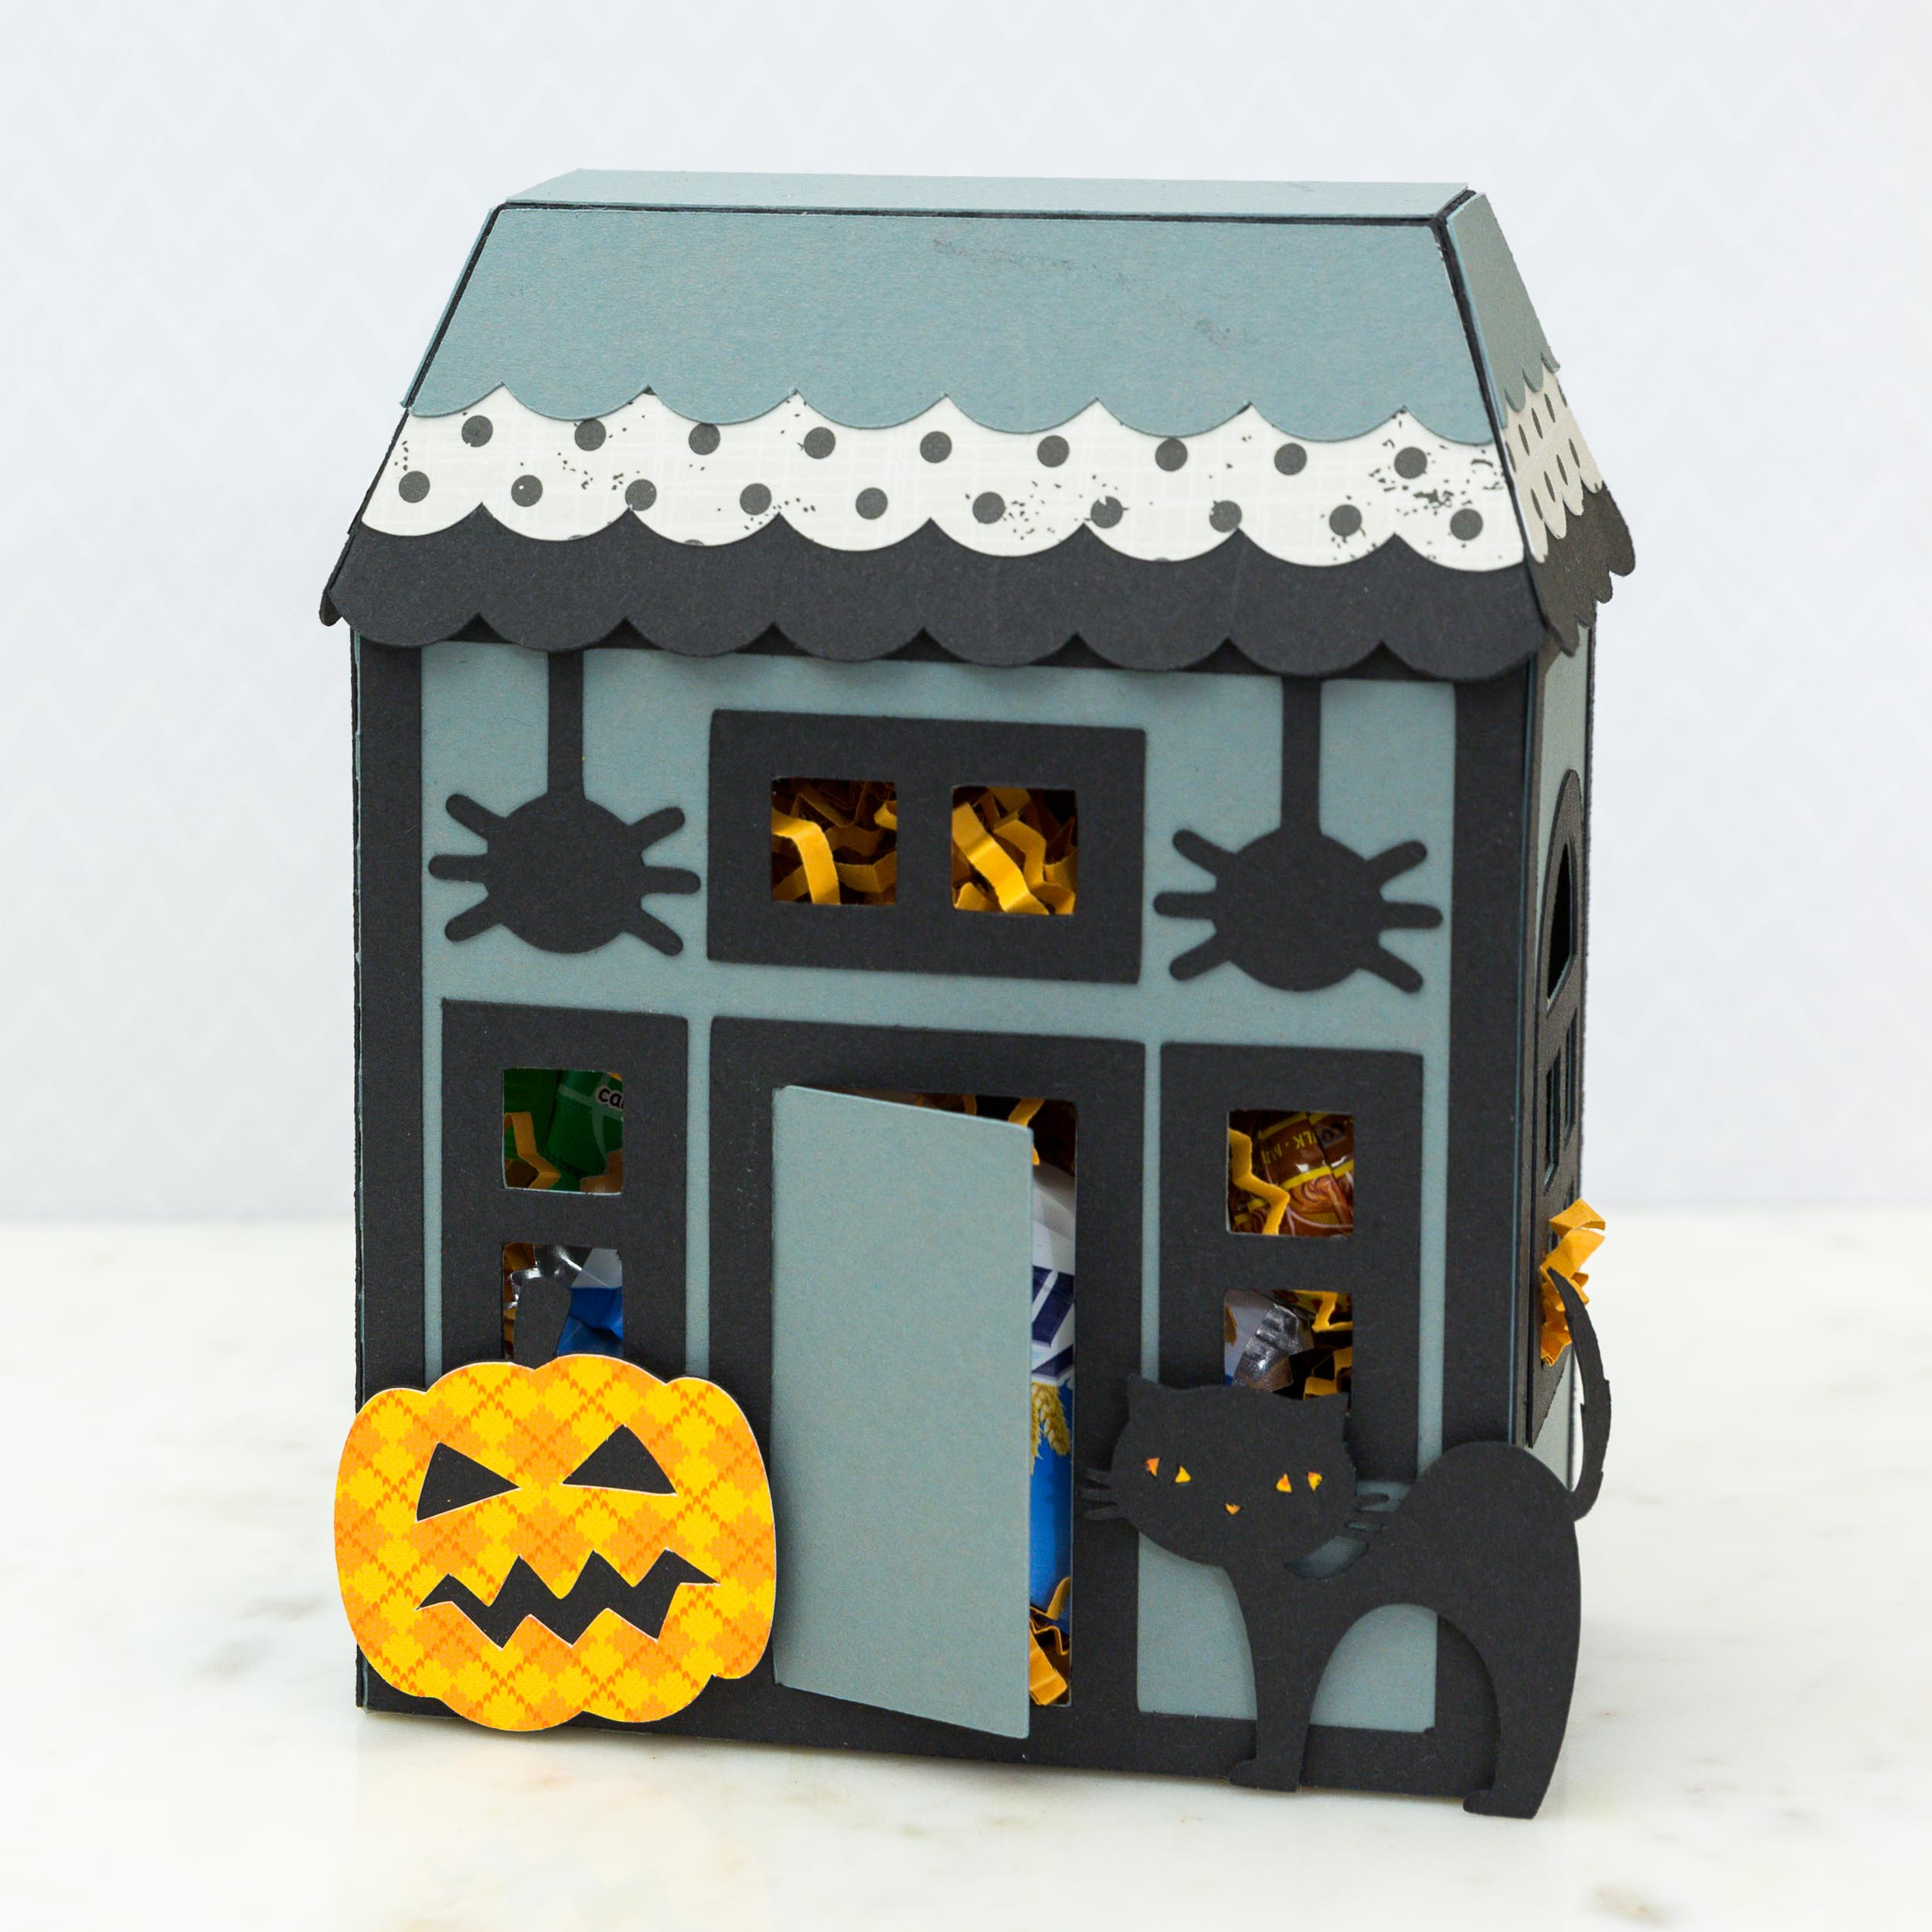 Halloween Haunted House by Mimi Zitrone